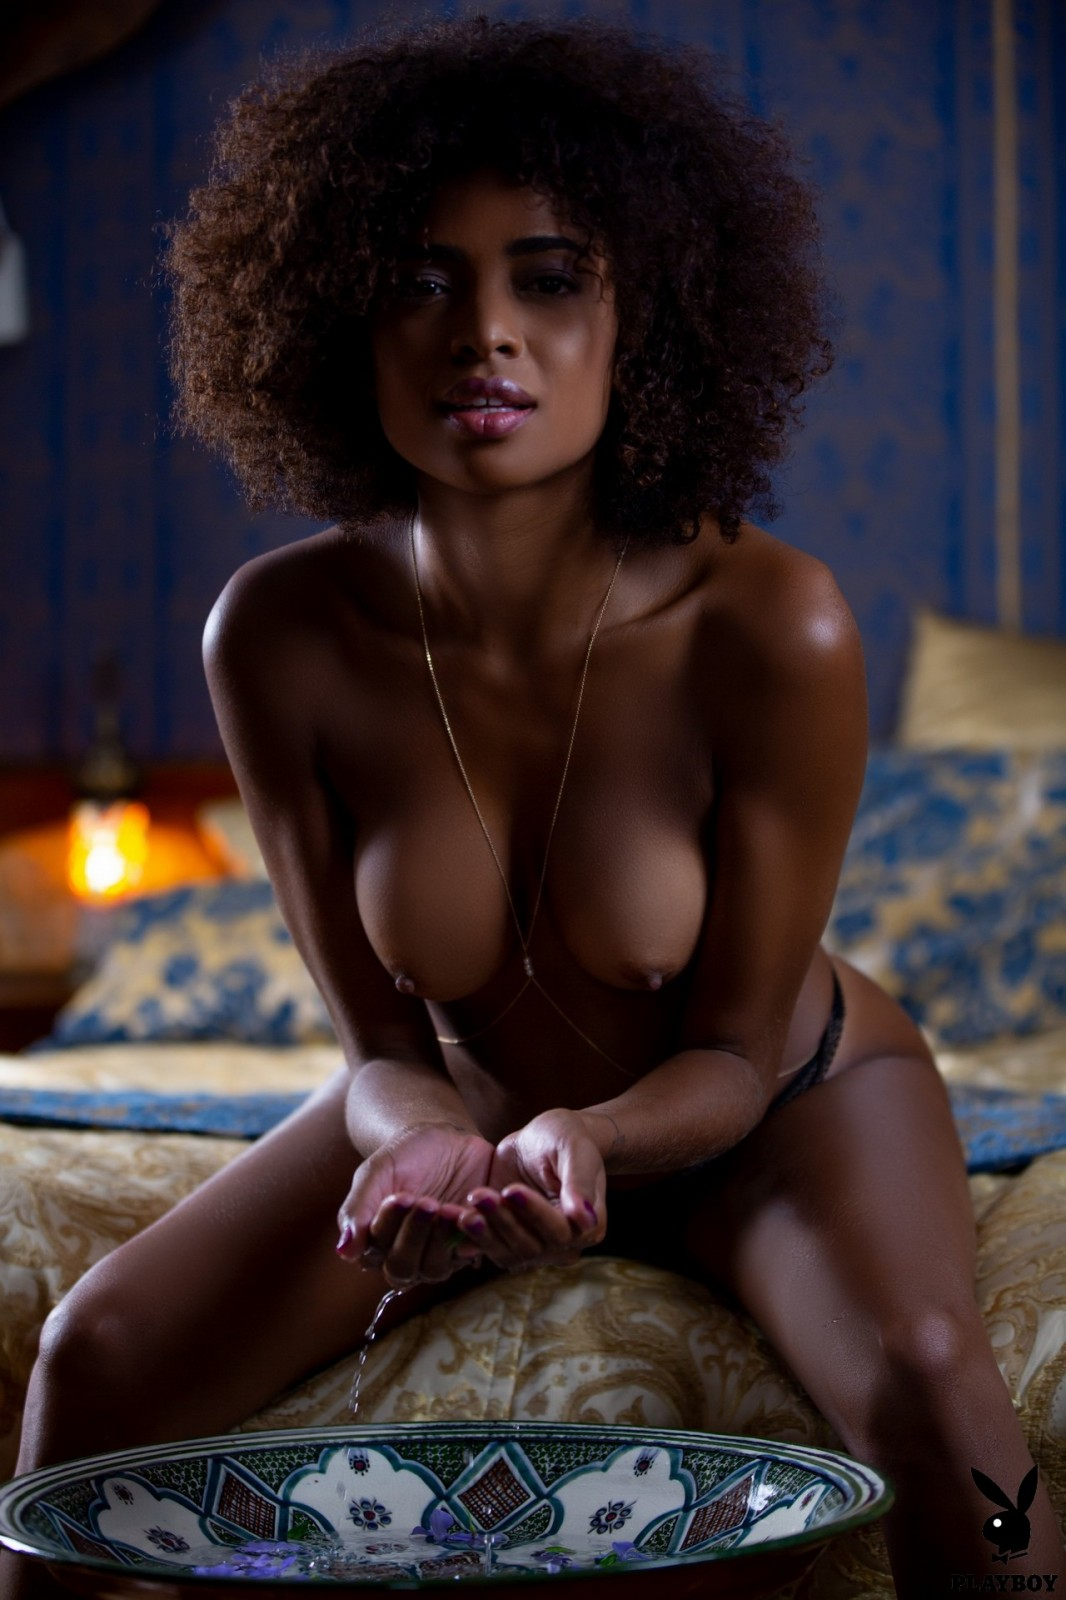 Busty black models